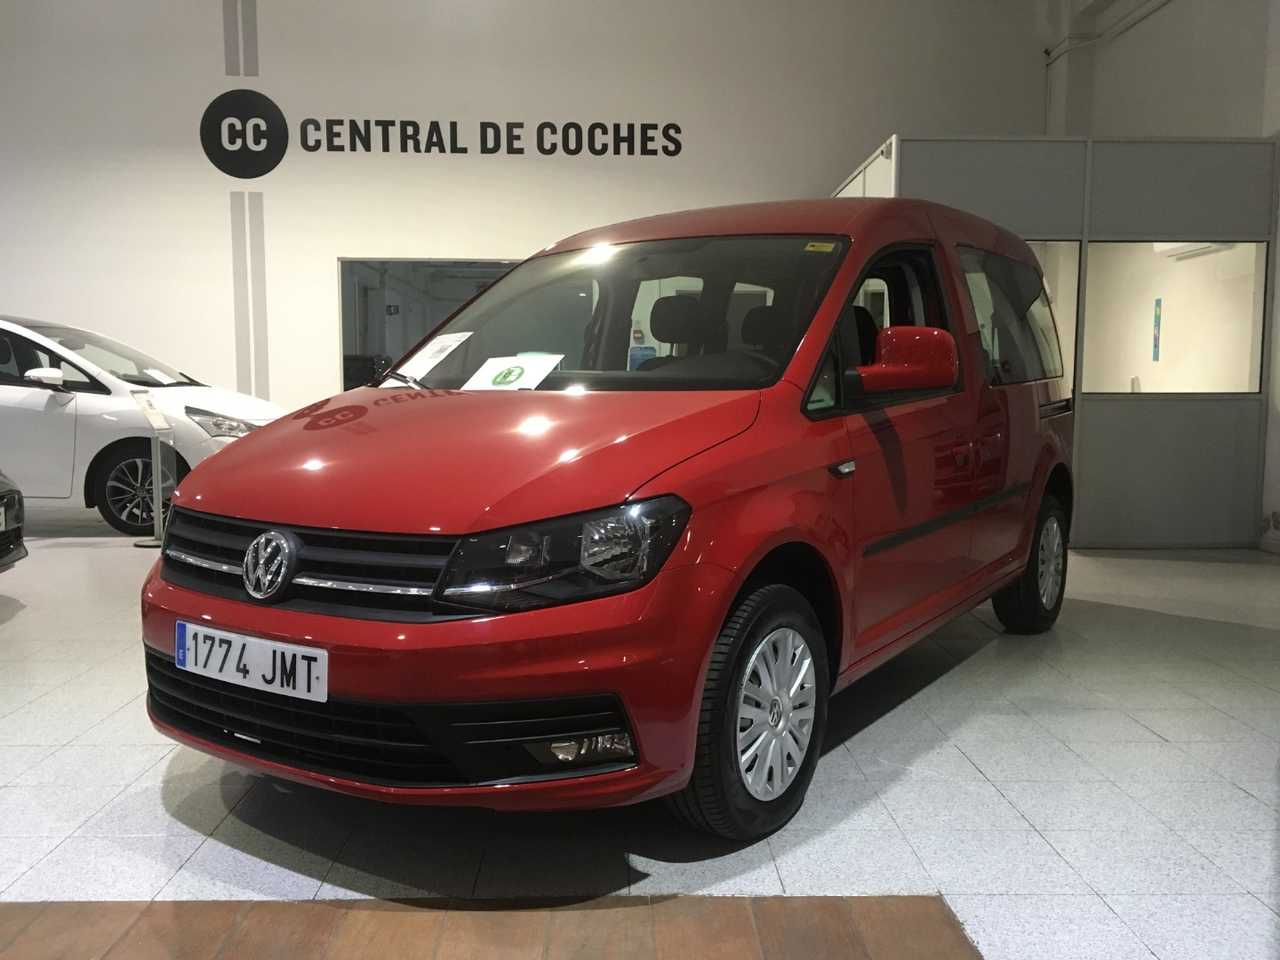 Volkswagen Caddy Kombi PRO 2.0 TDI 102cv / Doble puerta lateral   - Foto 1